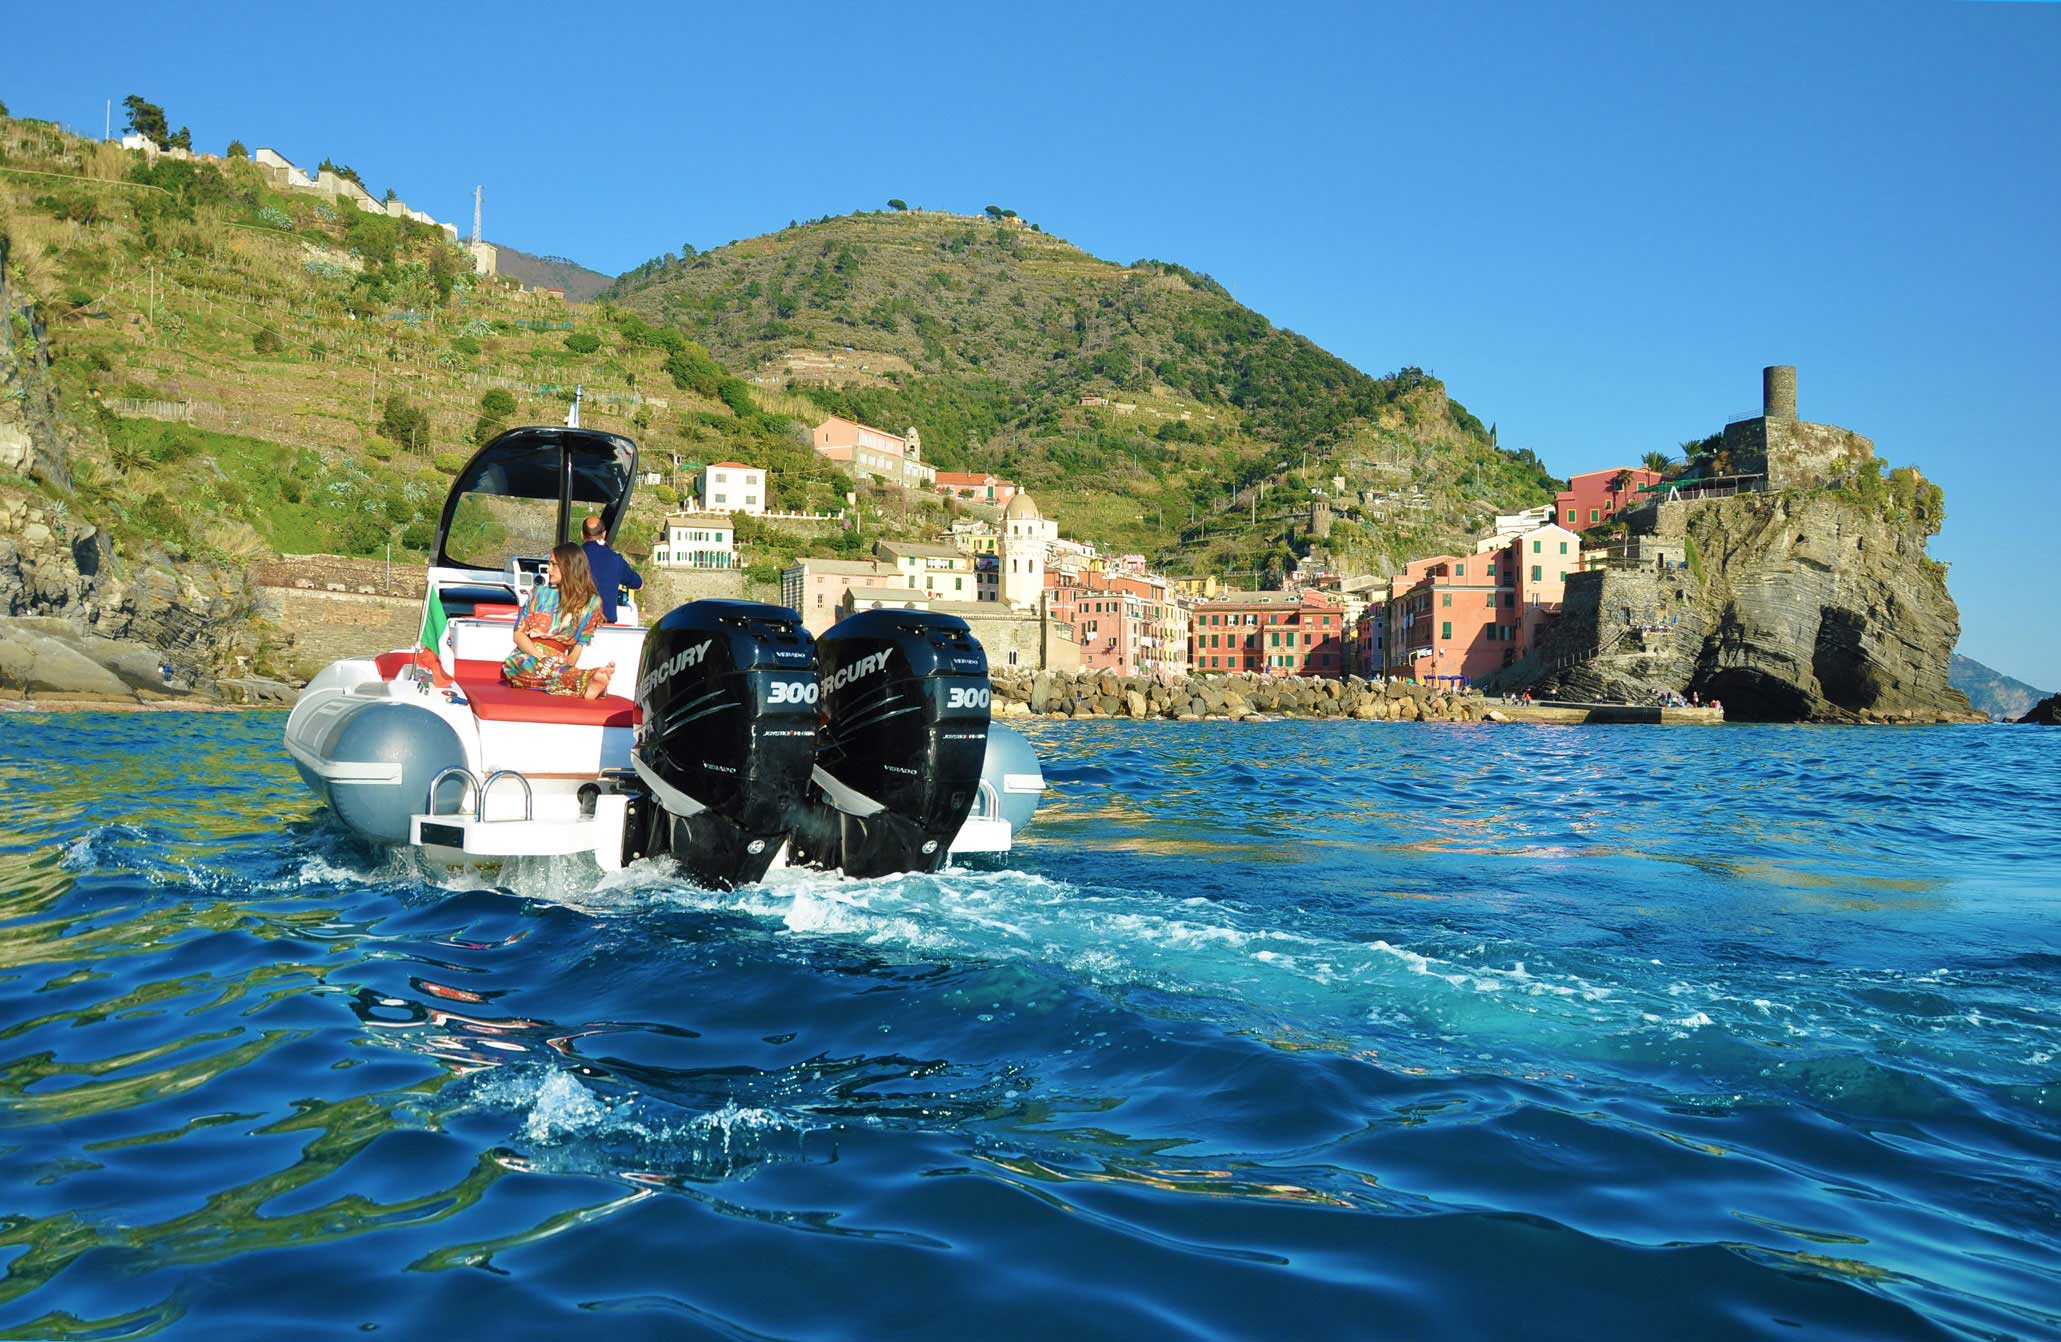 Charter in Cinque Terre